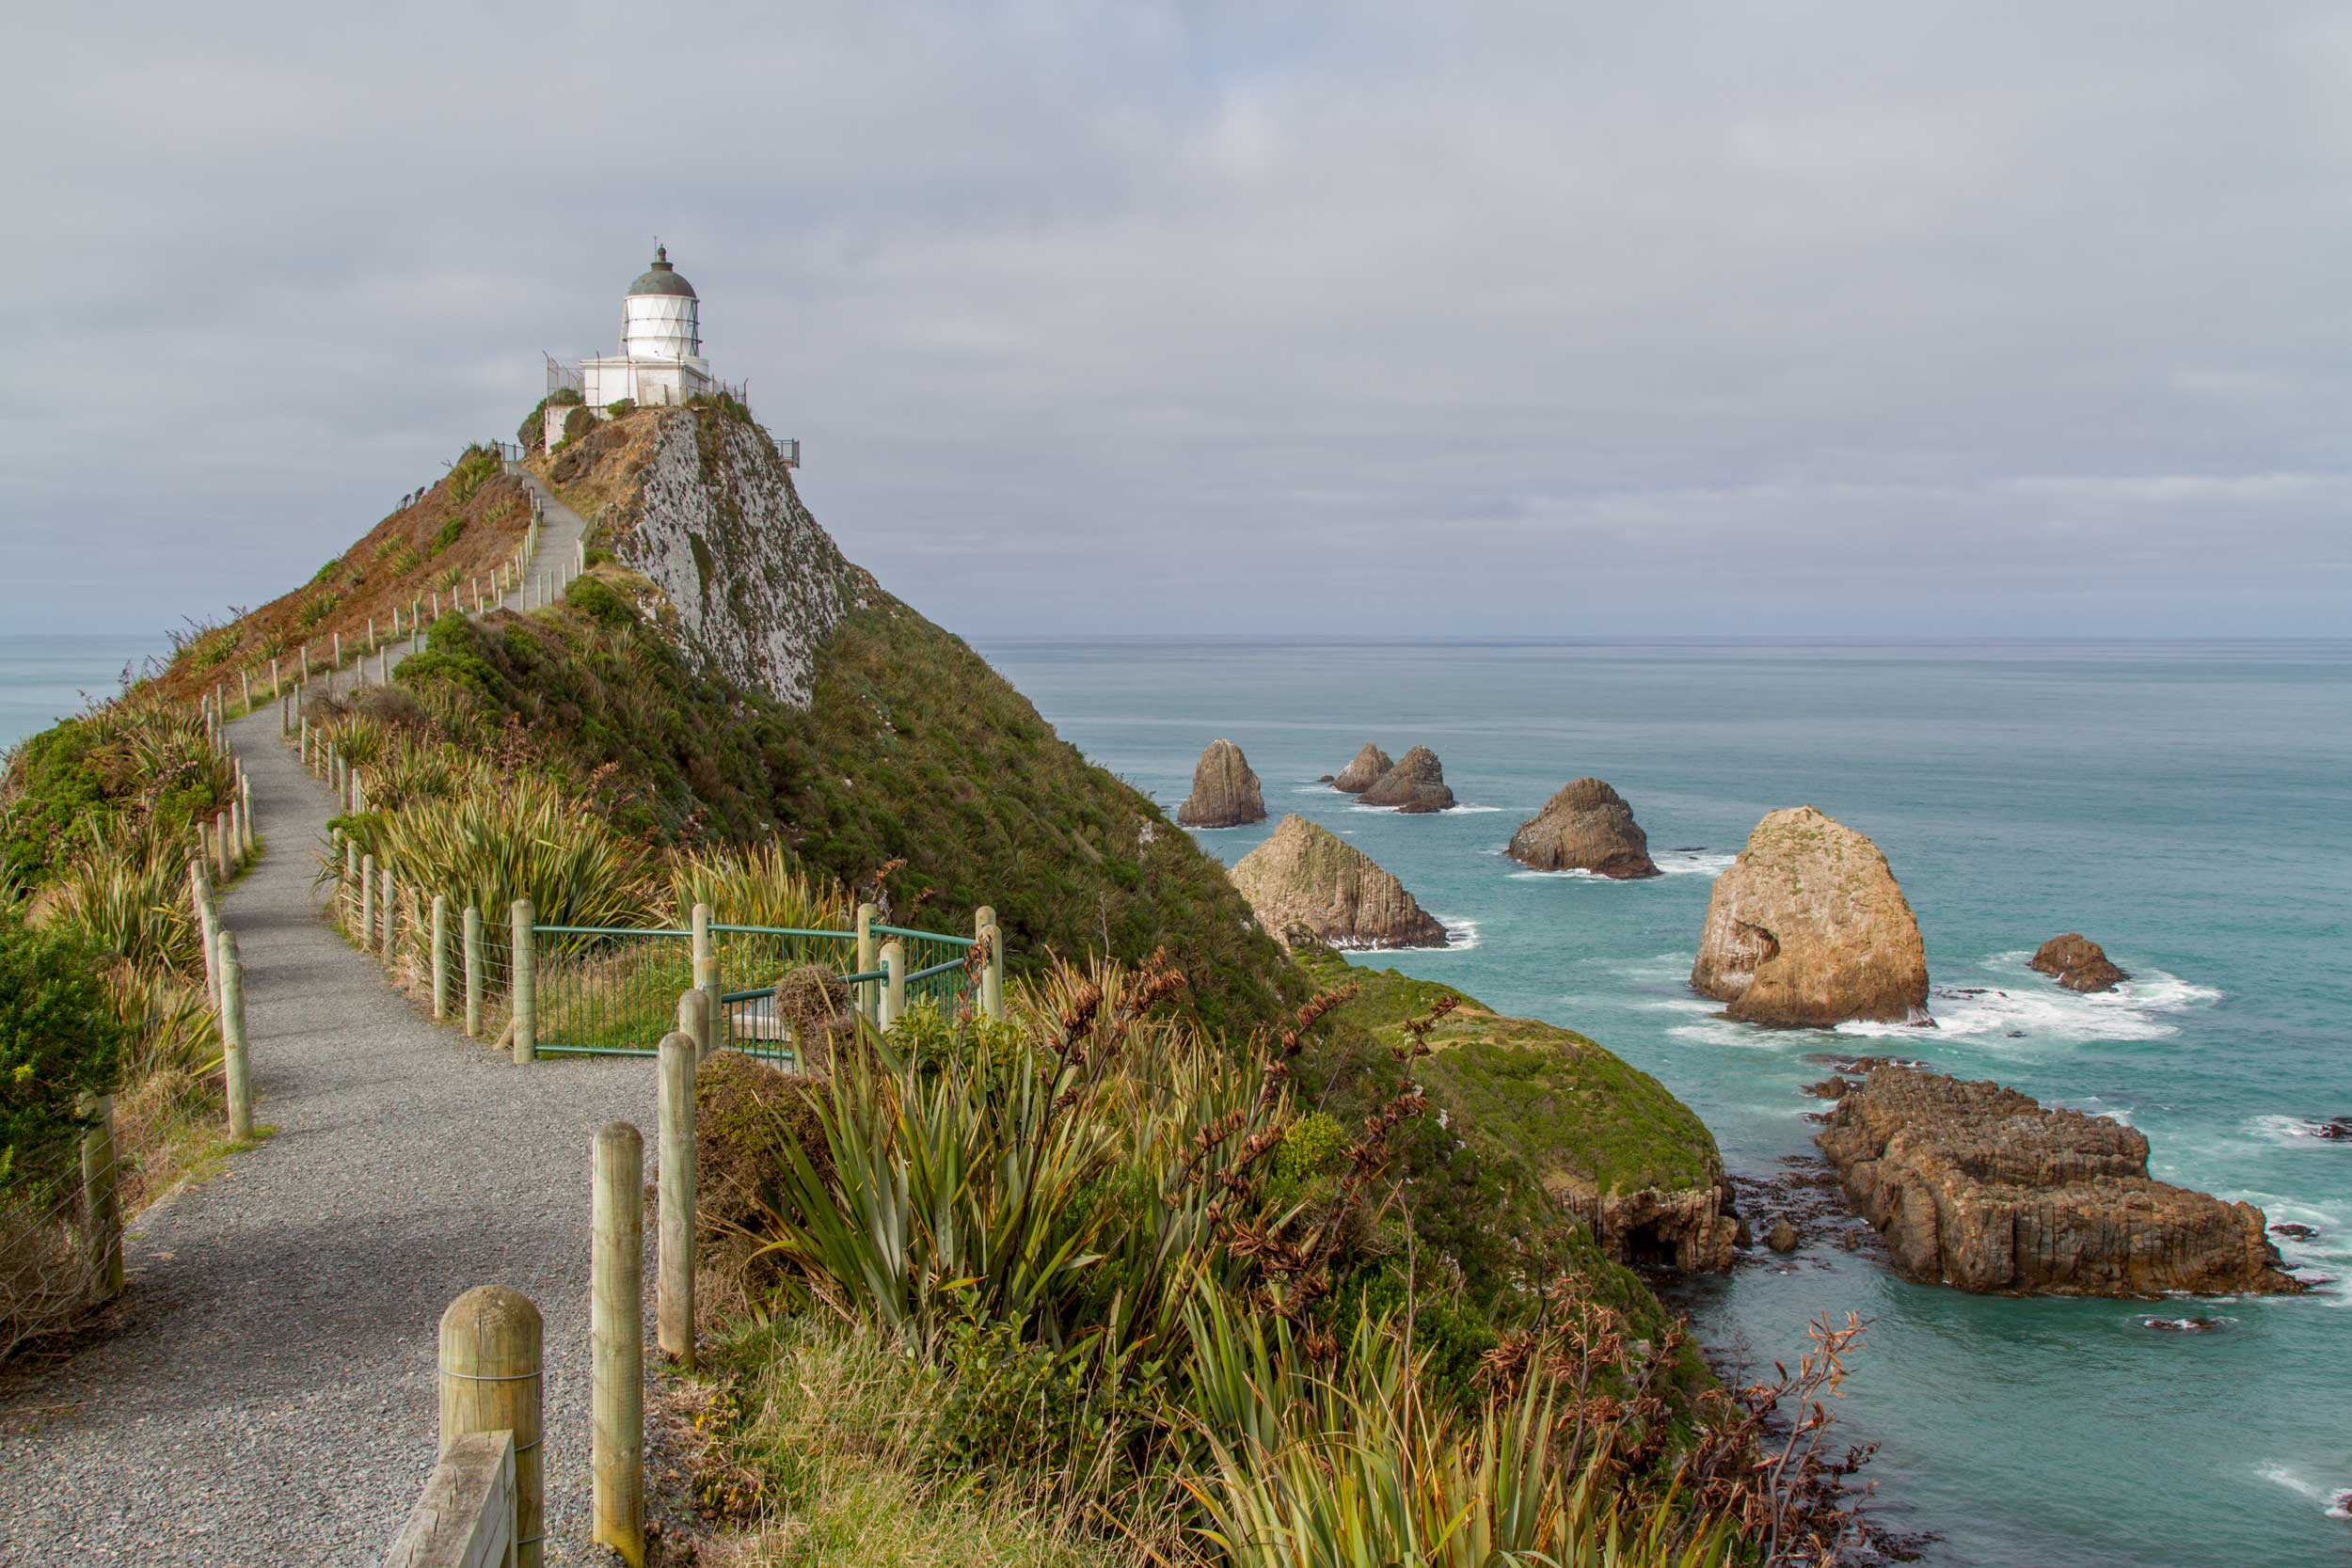 A winding pathway through flax up to a white lighthouse with boulders scattered in the sea past it, New Zealand